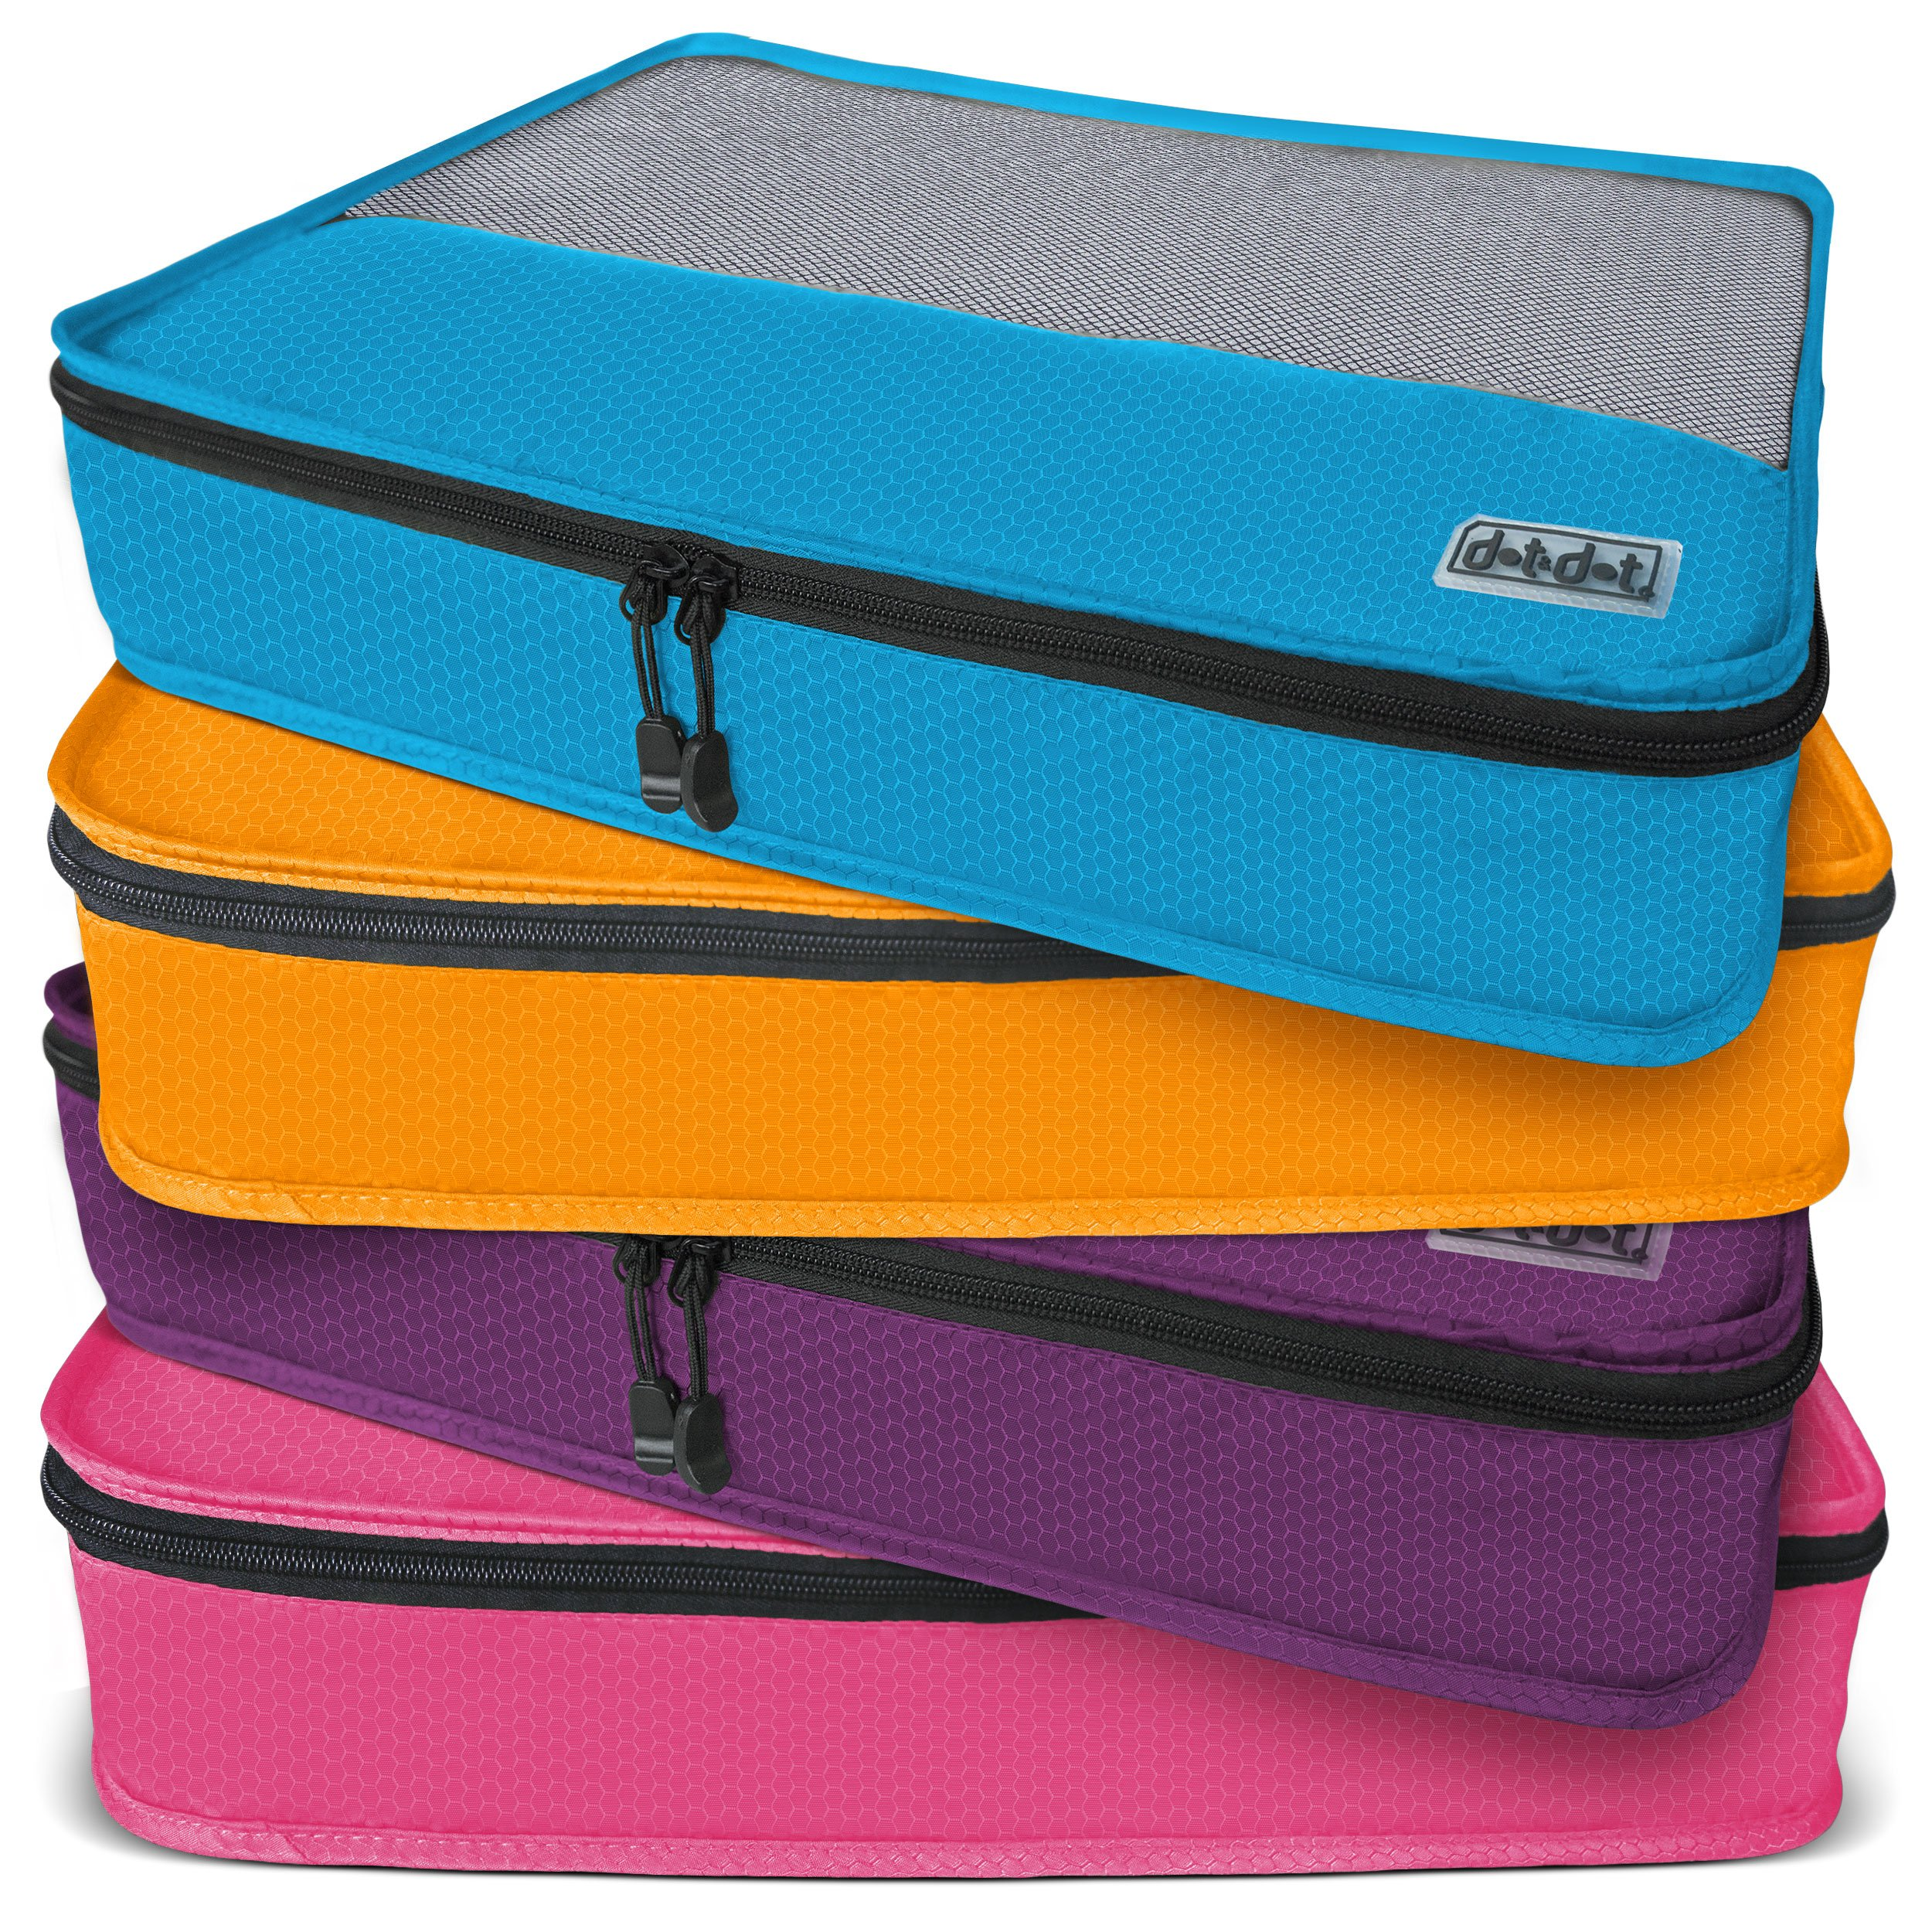 Dot&Dot Large Packing Cubes for Travel - 4 Piece Luggage Accessories Organizers by Dot&Dot